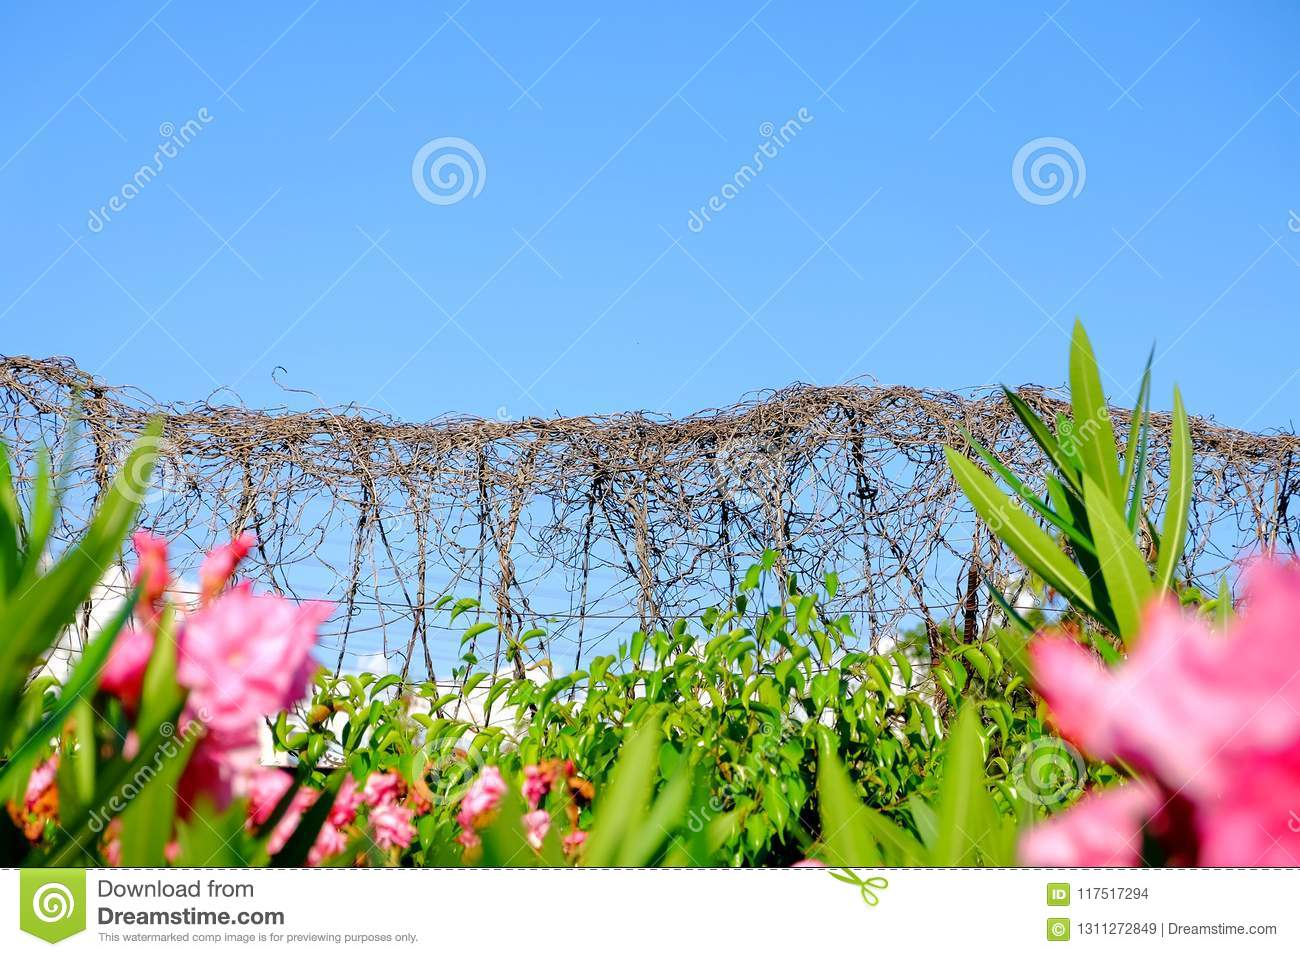 Barbed wire fence stock photo. Image of border, place - 117517294